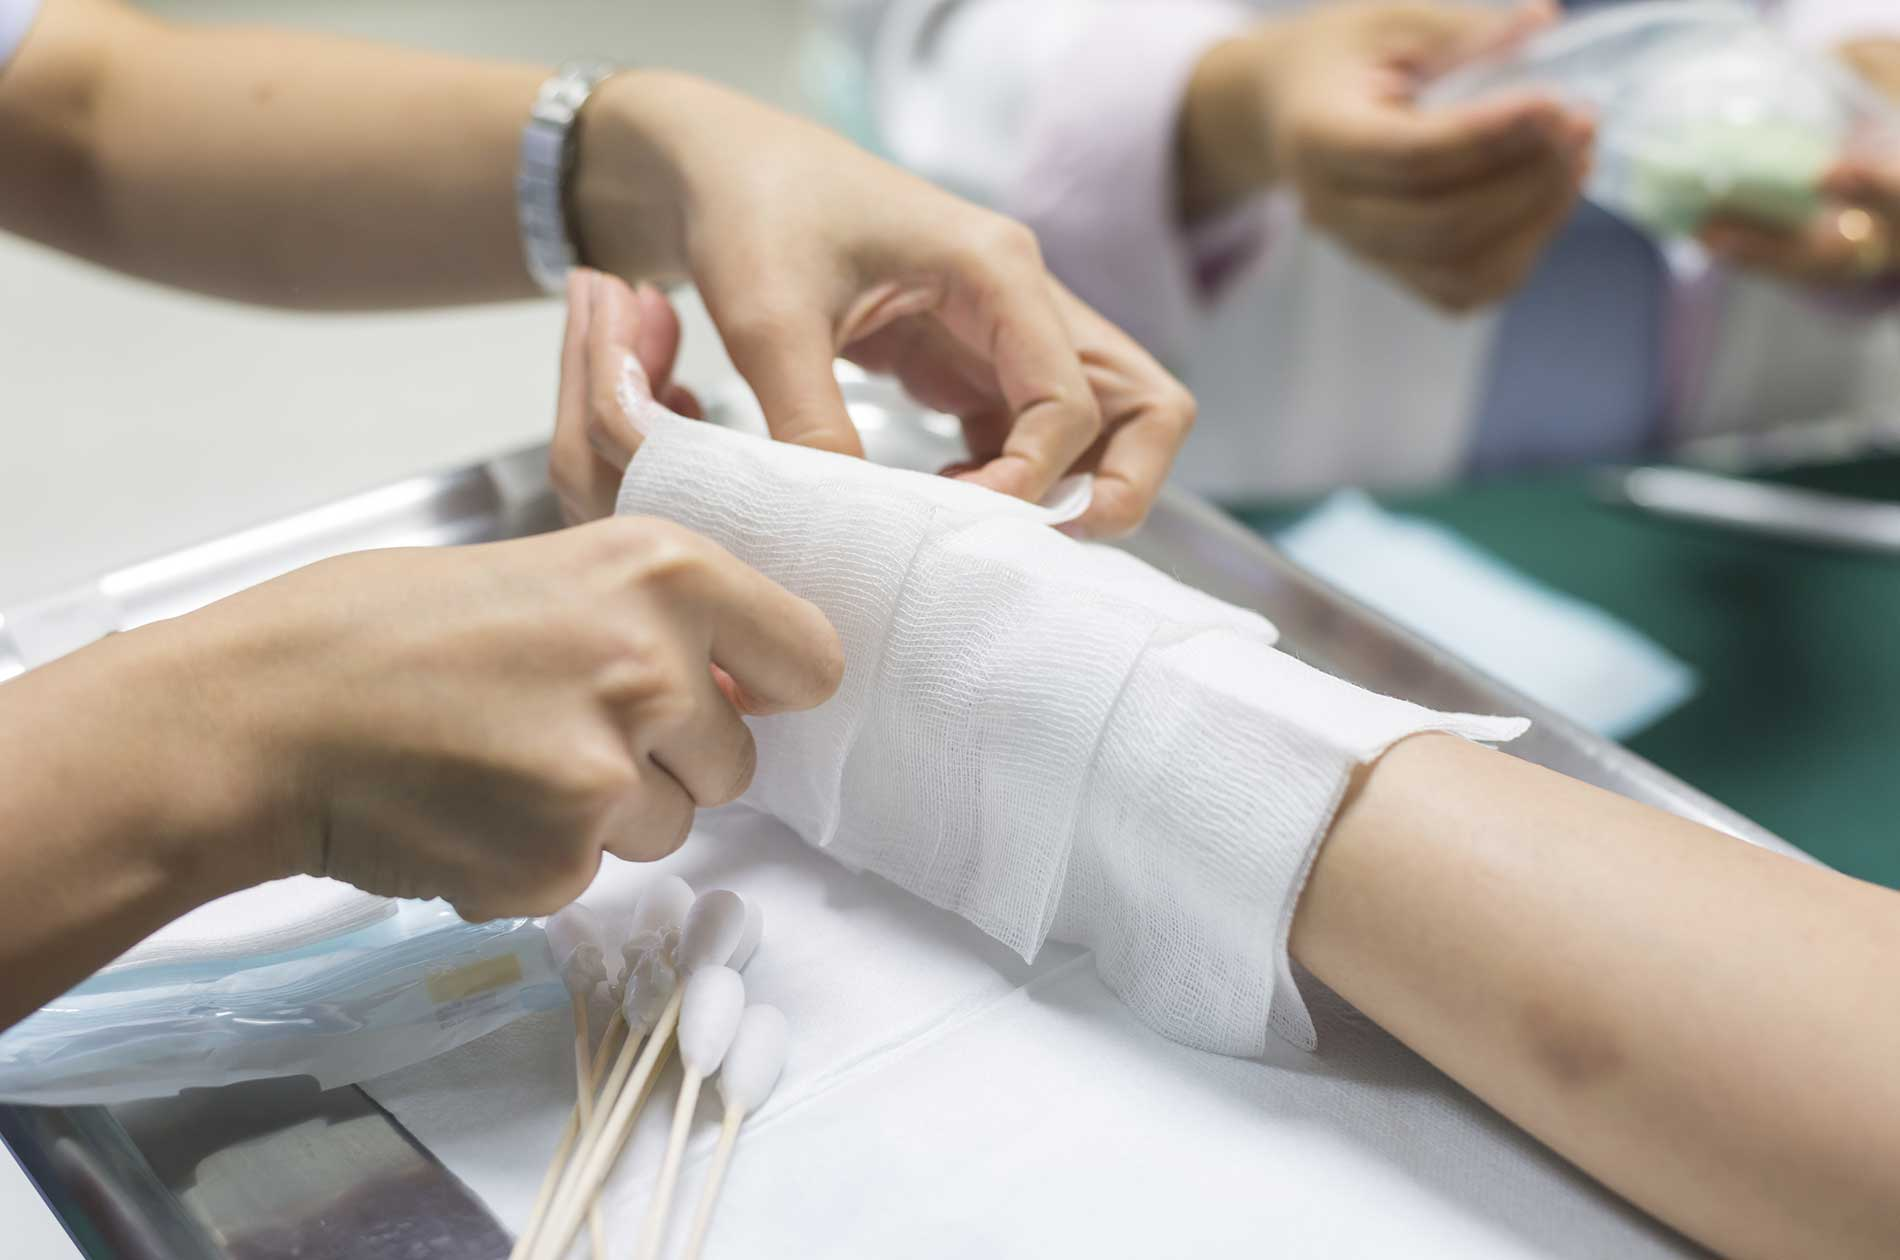 A doctor treating a patient's burn injury.